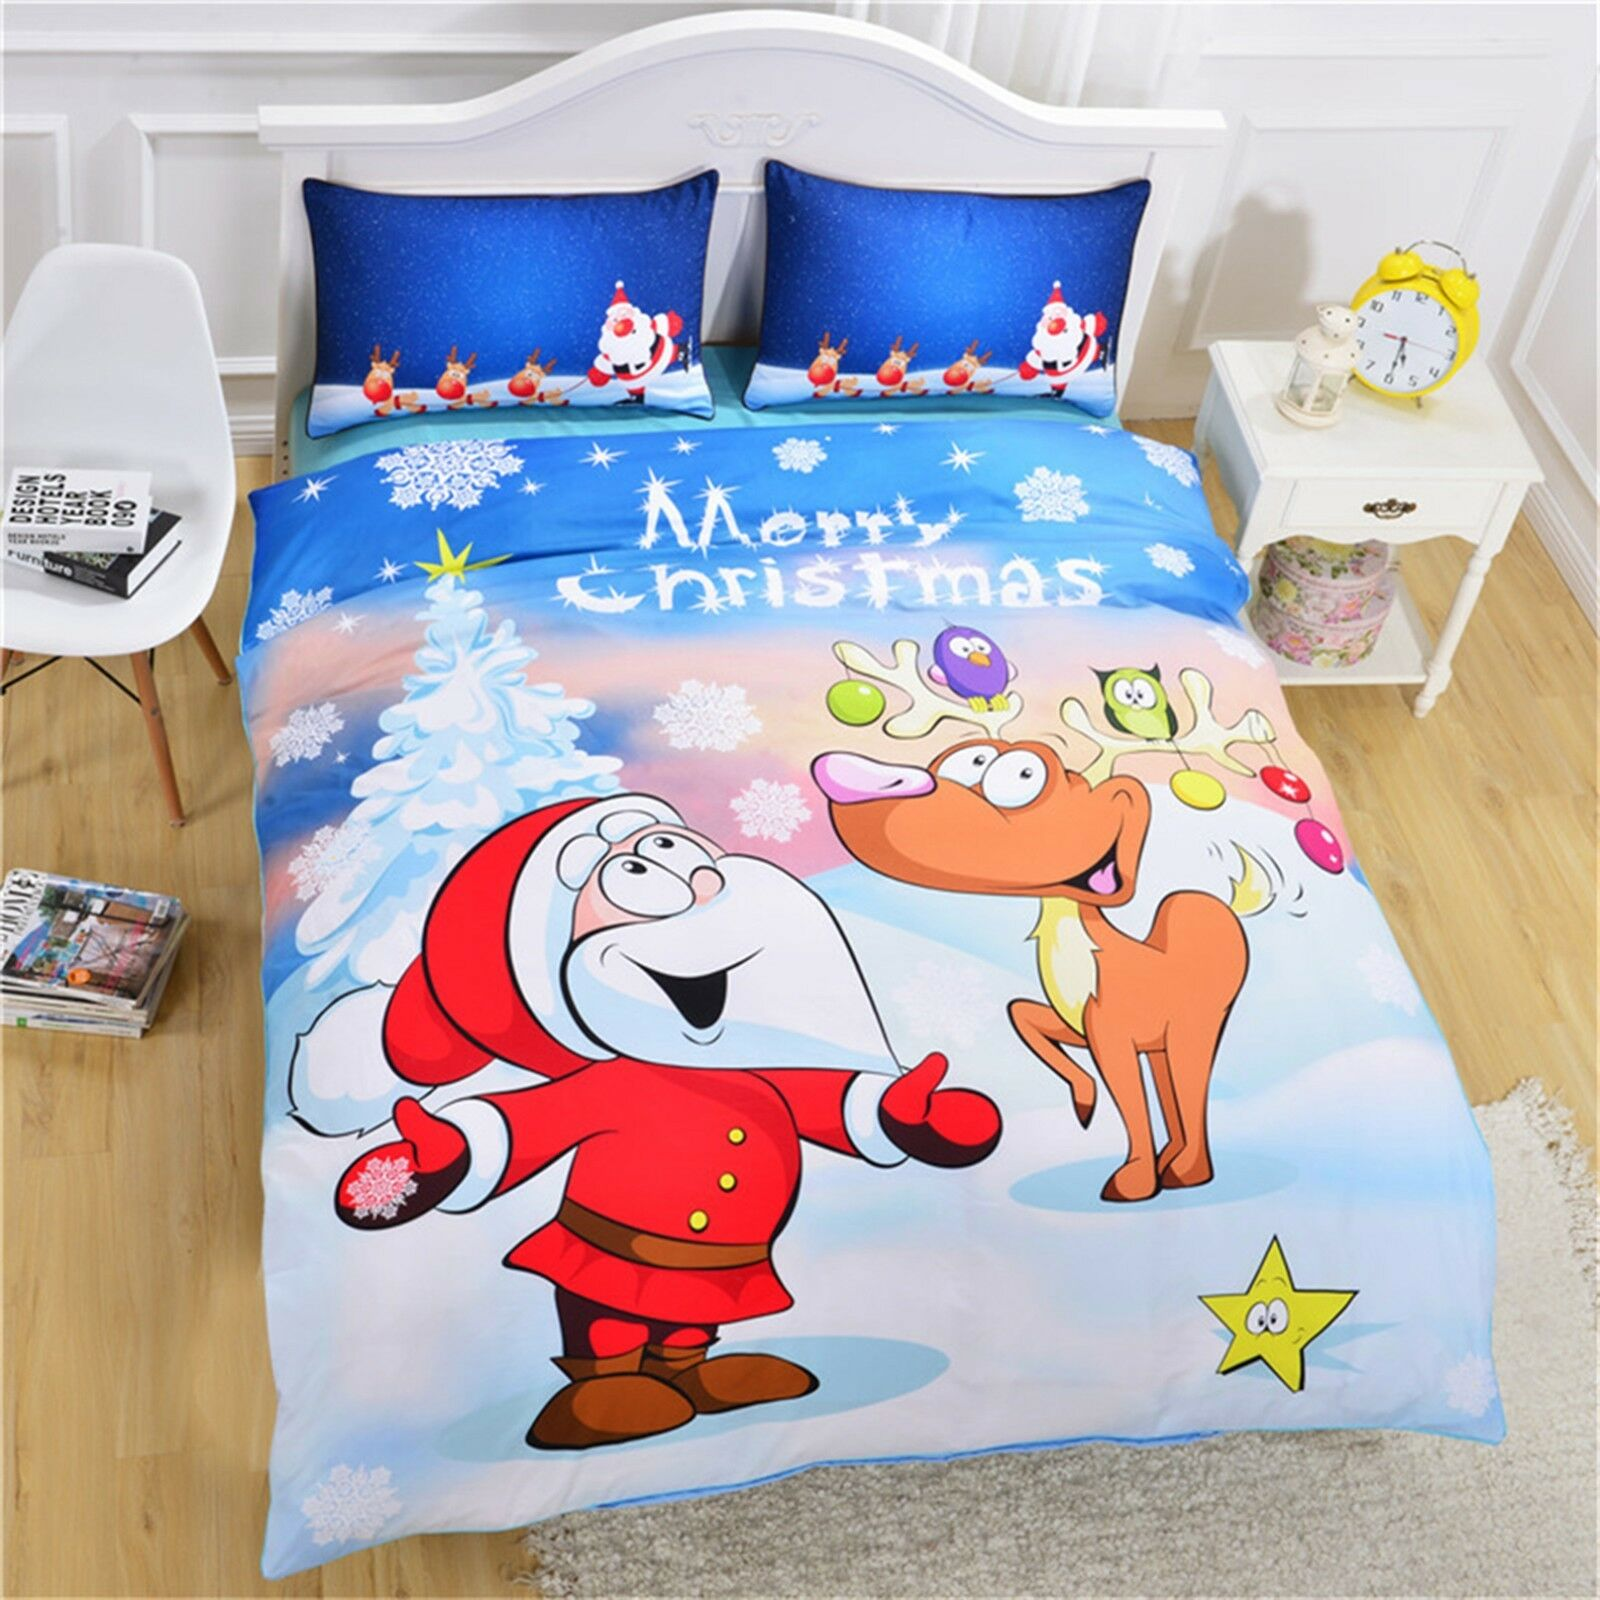 3D Happy Christmas 482 Bed Pillowcases Quilt Duvet Cover Set Single Queen CA